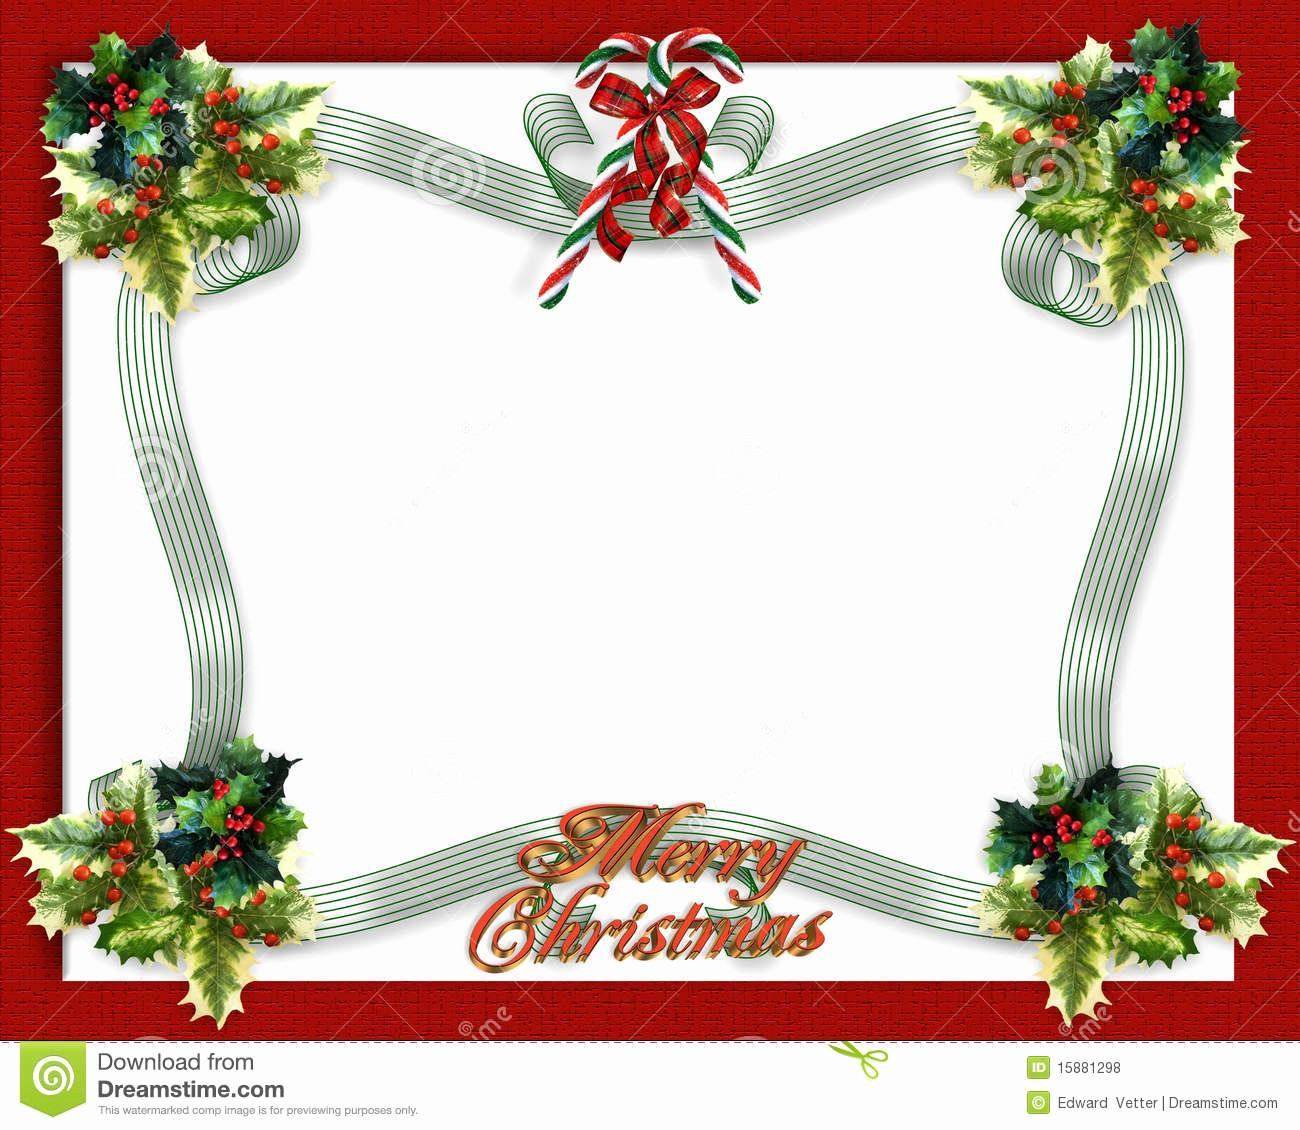 Free Printable Christmas Invitations Cards Inspirational Christmas Invite Templates Free Downloading